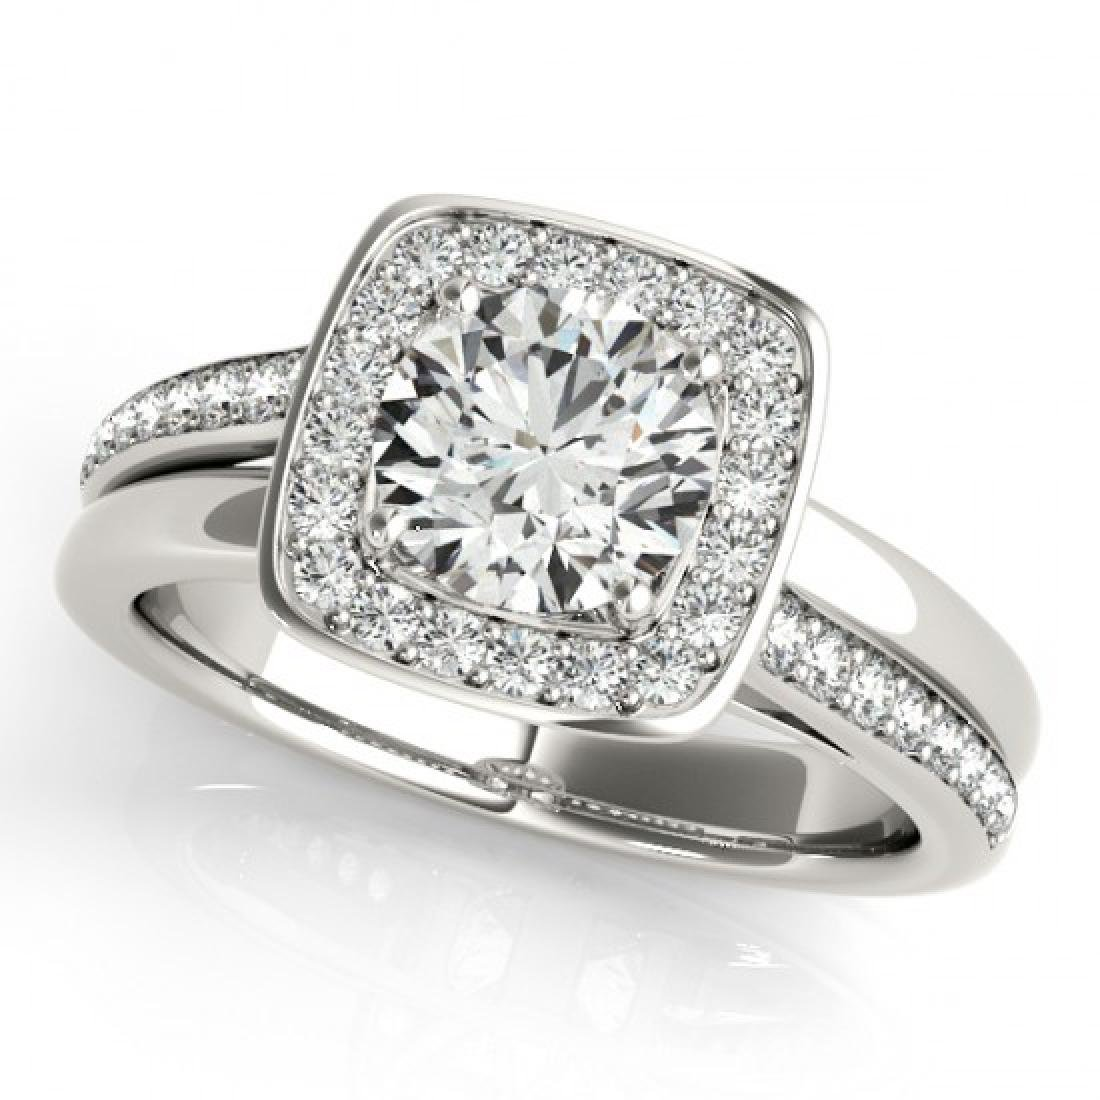 1.33 CTW Certified VS/SI Diamond Solitaire Halo Ring - 2